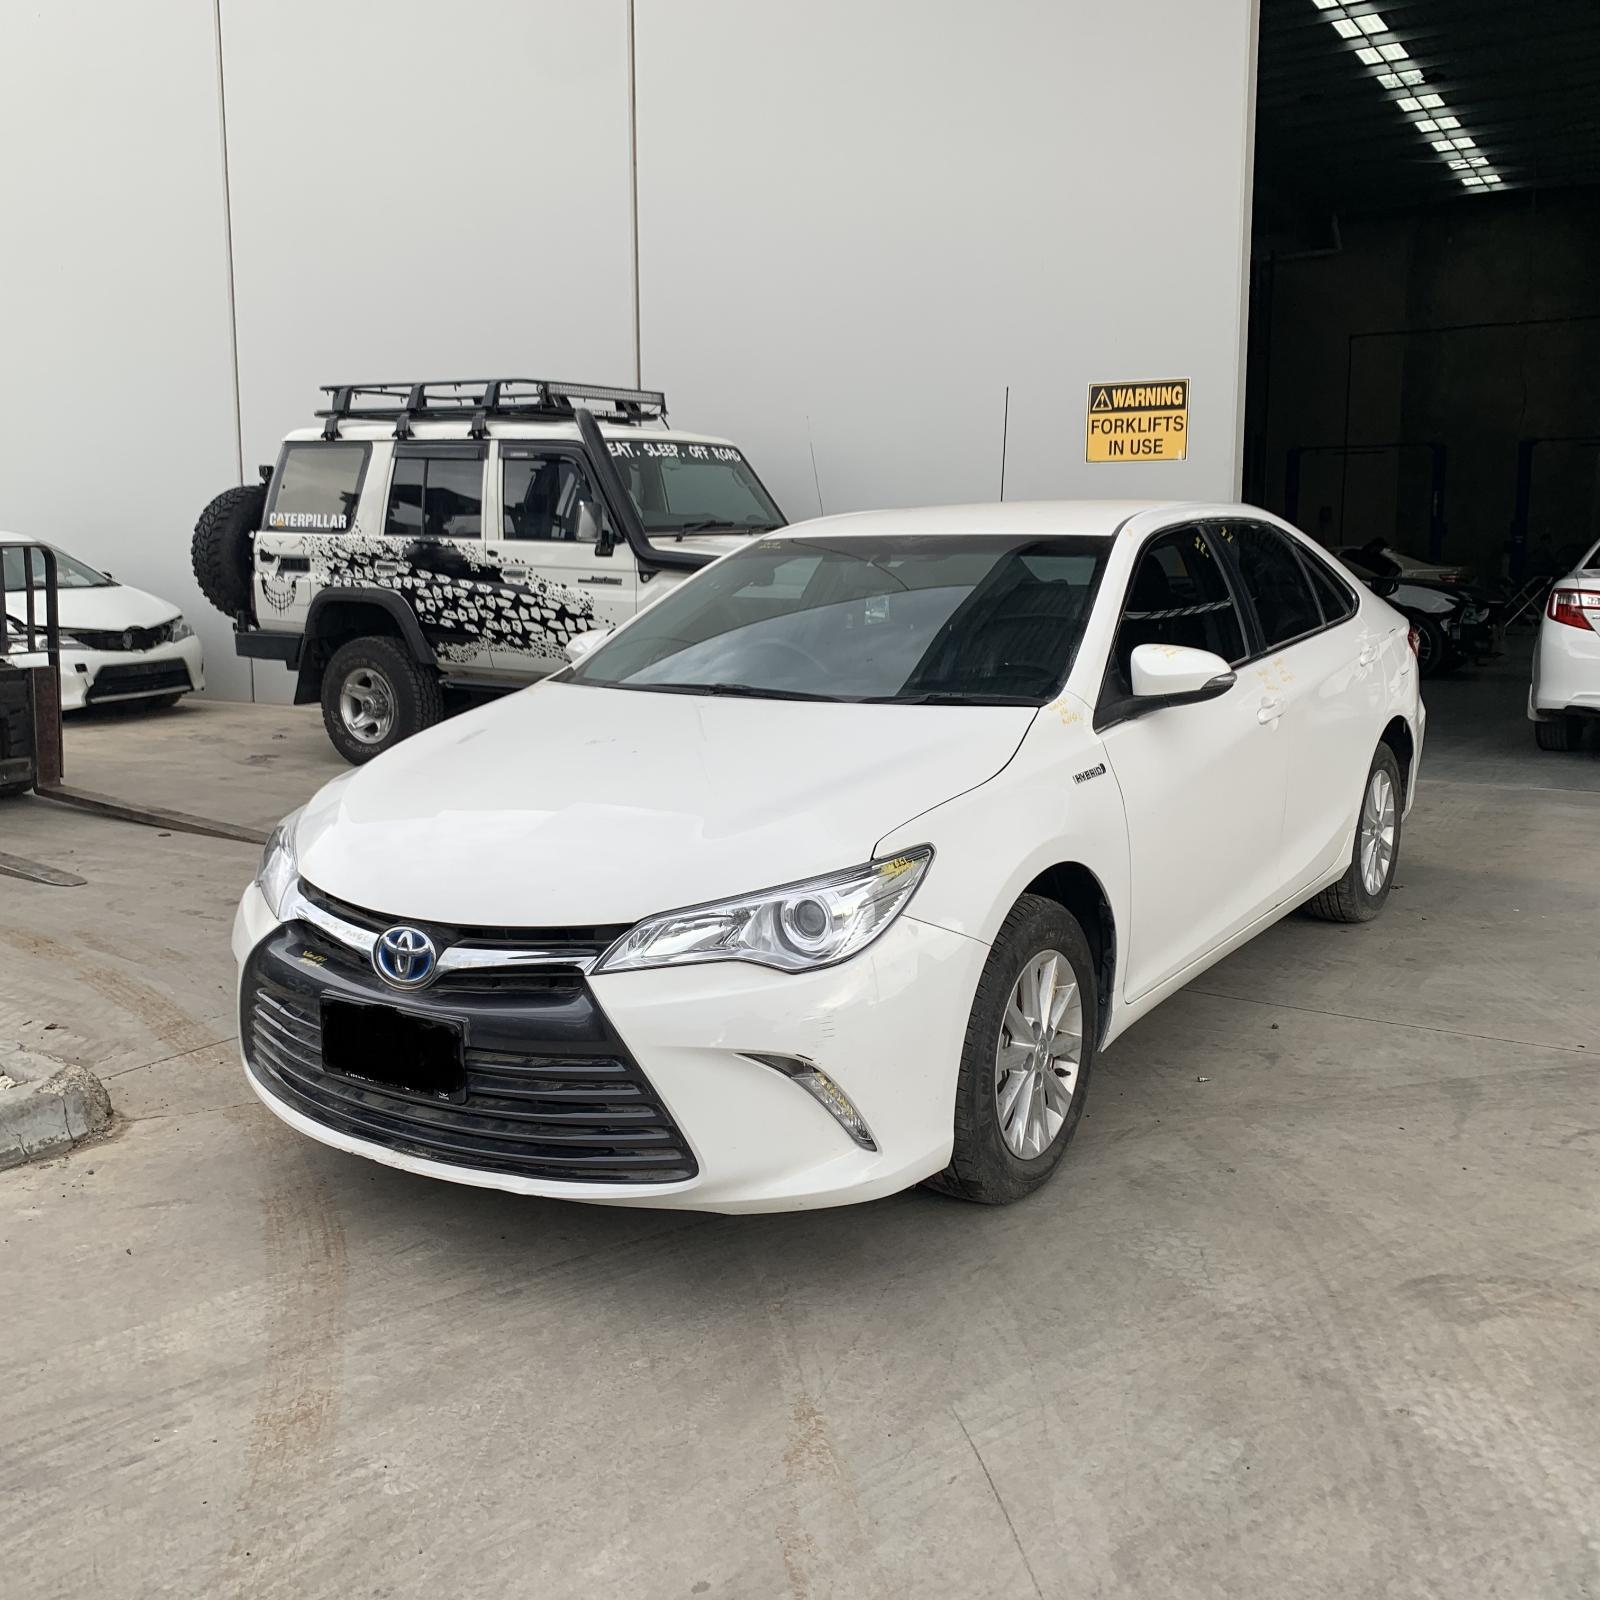 Toyota CAMRY ALTISE HYBRID 2AR-FXE 2.5L Engine Automatic FWD Transmission 05/15 - 10/17